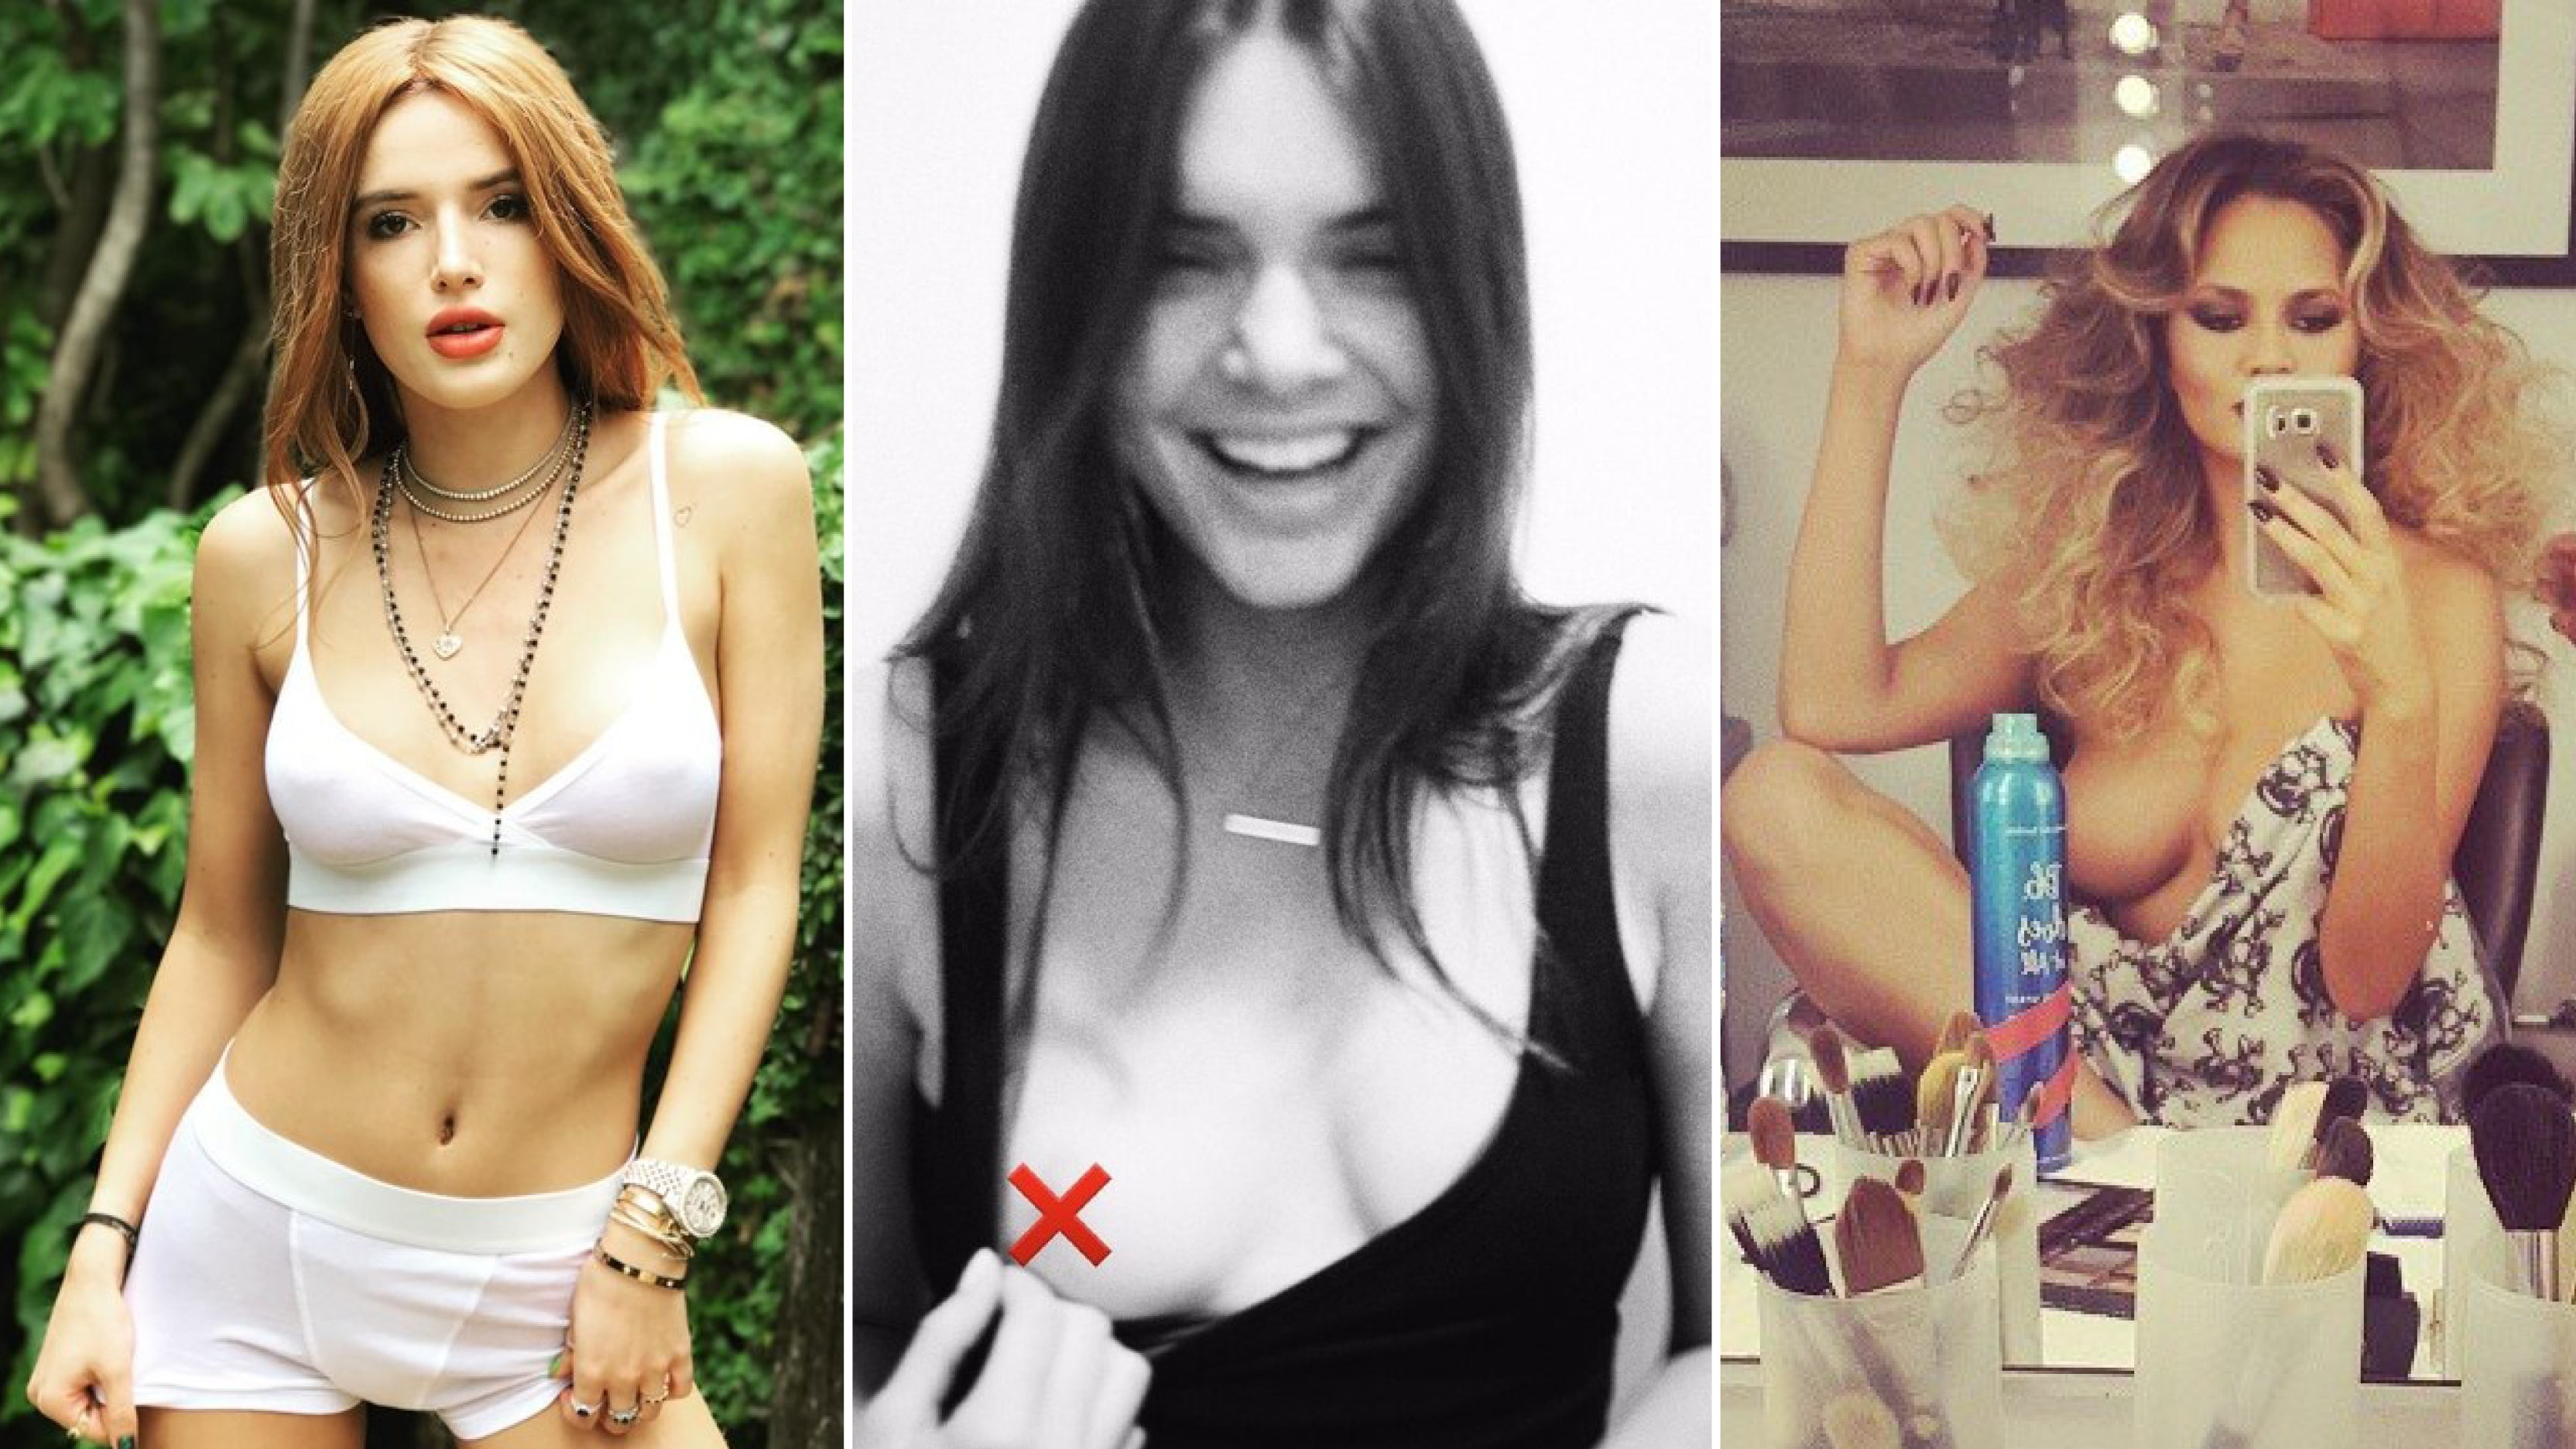 Famous girls exposed